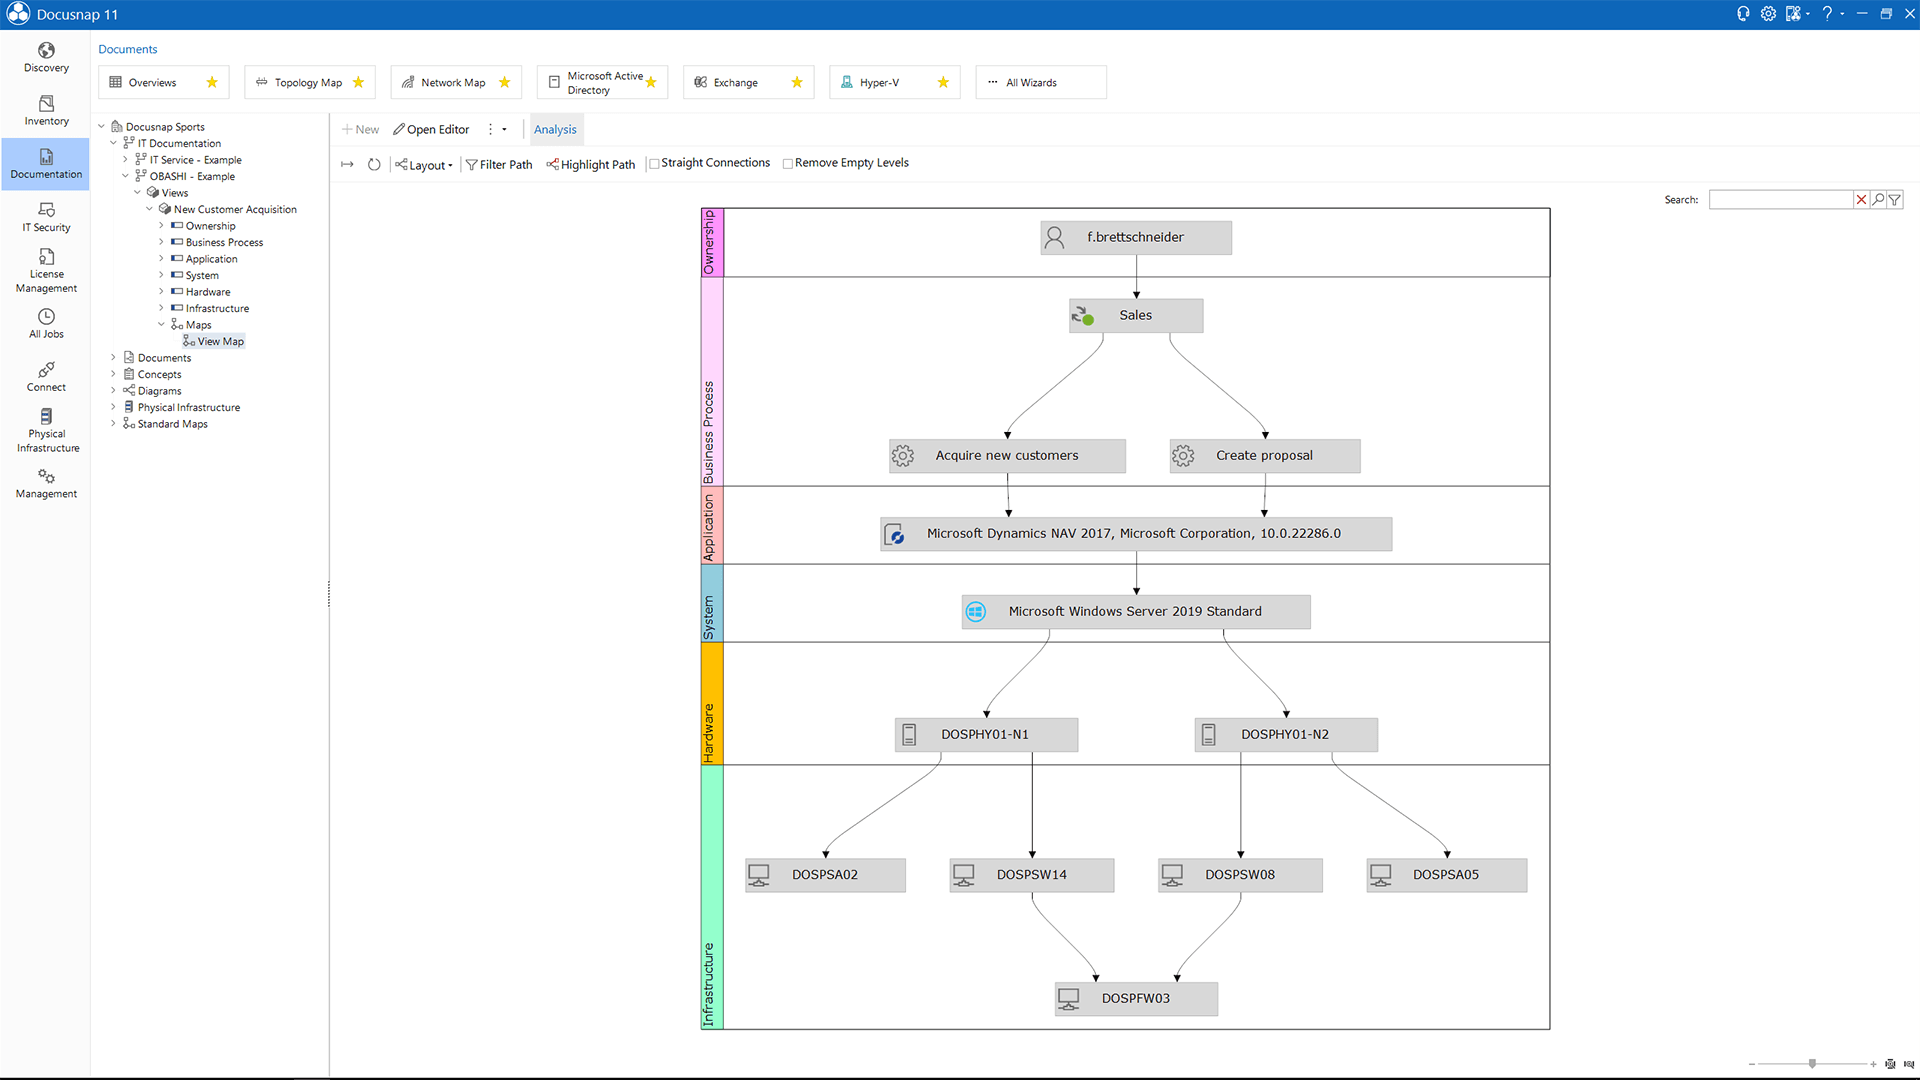 Screenshot: Visualization showing how processes and services depend on IT components